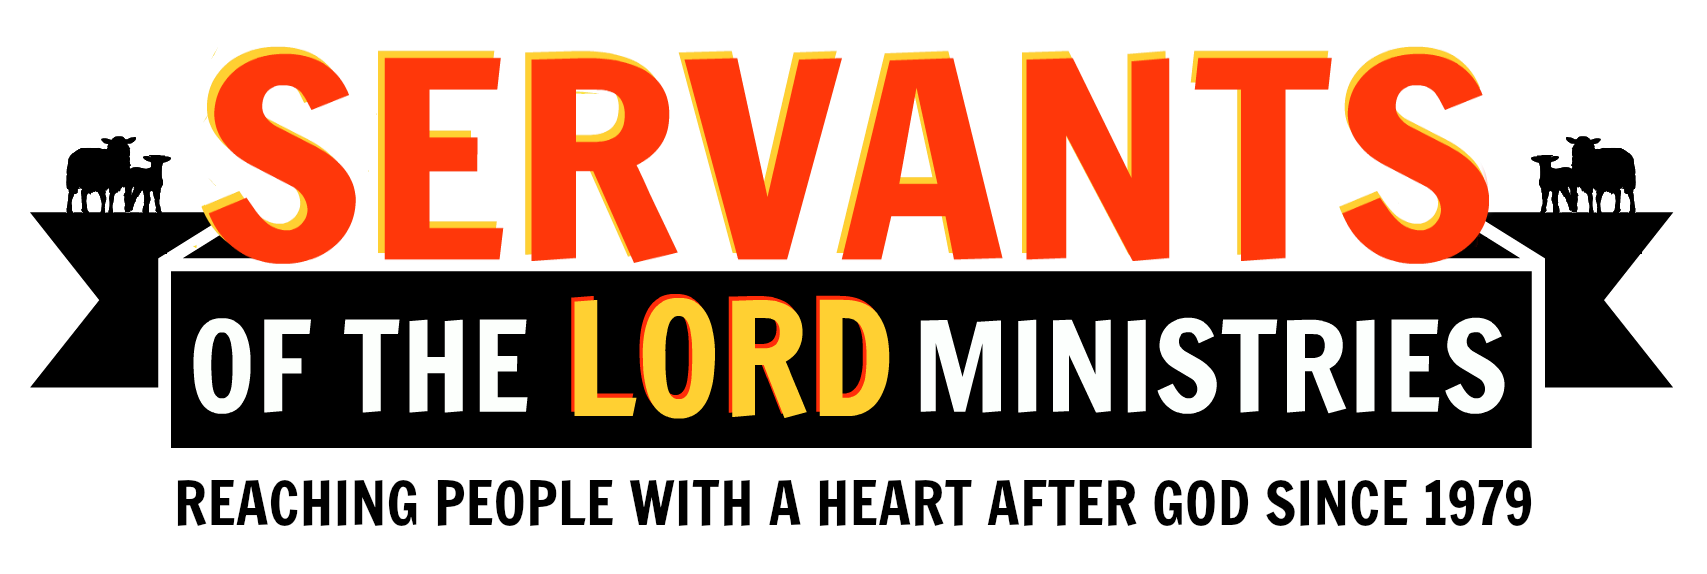 Servants of the Lord Ministries-Logo